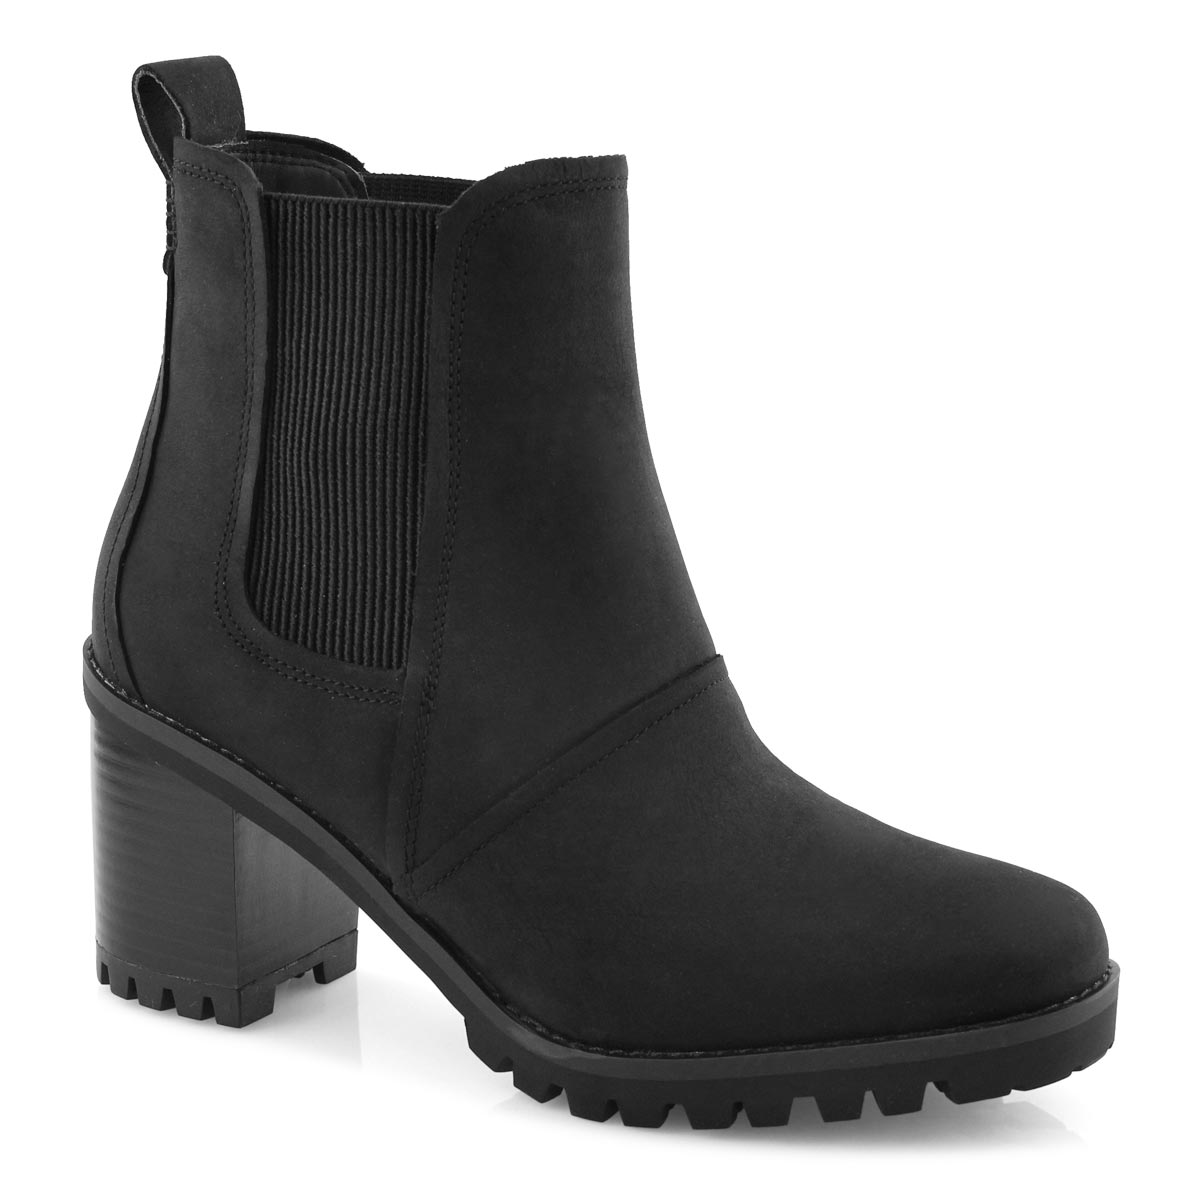 Lds Hazel black slip on wtpf bootie